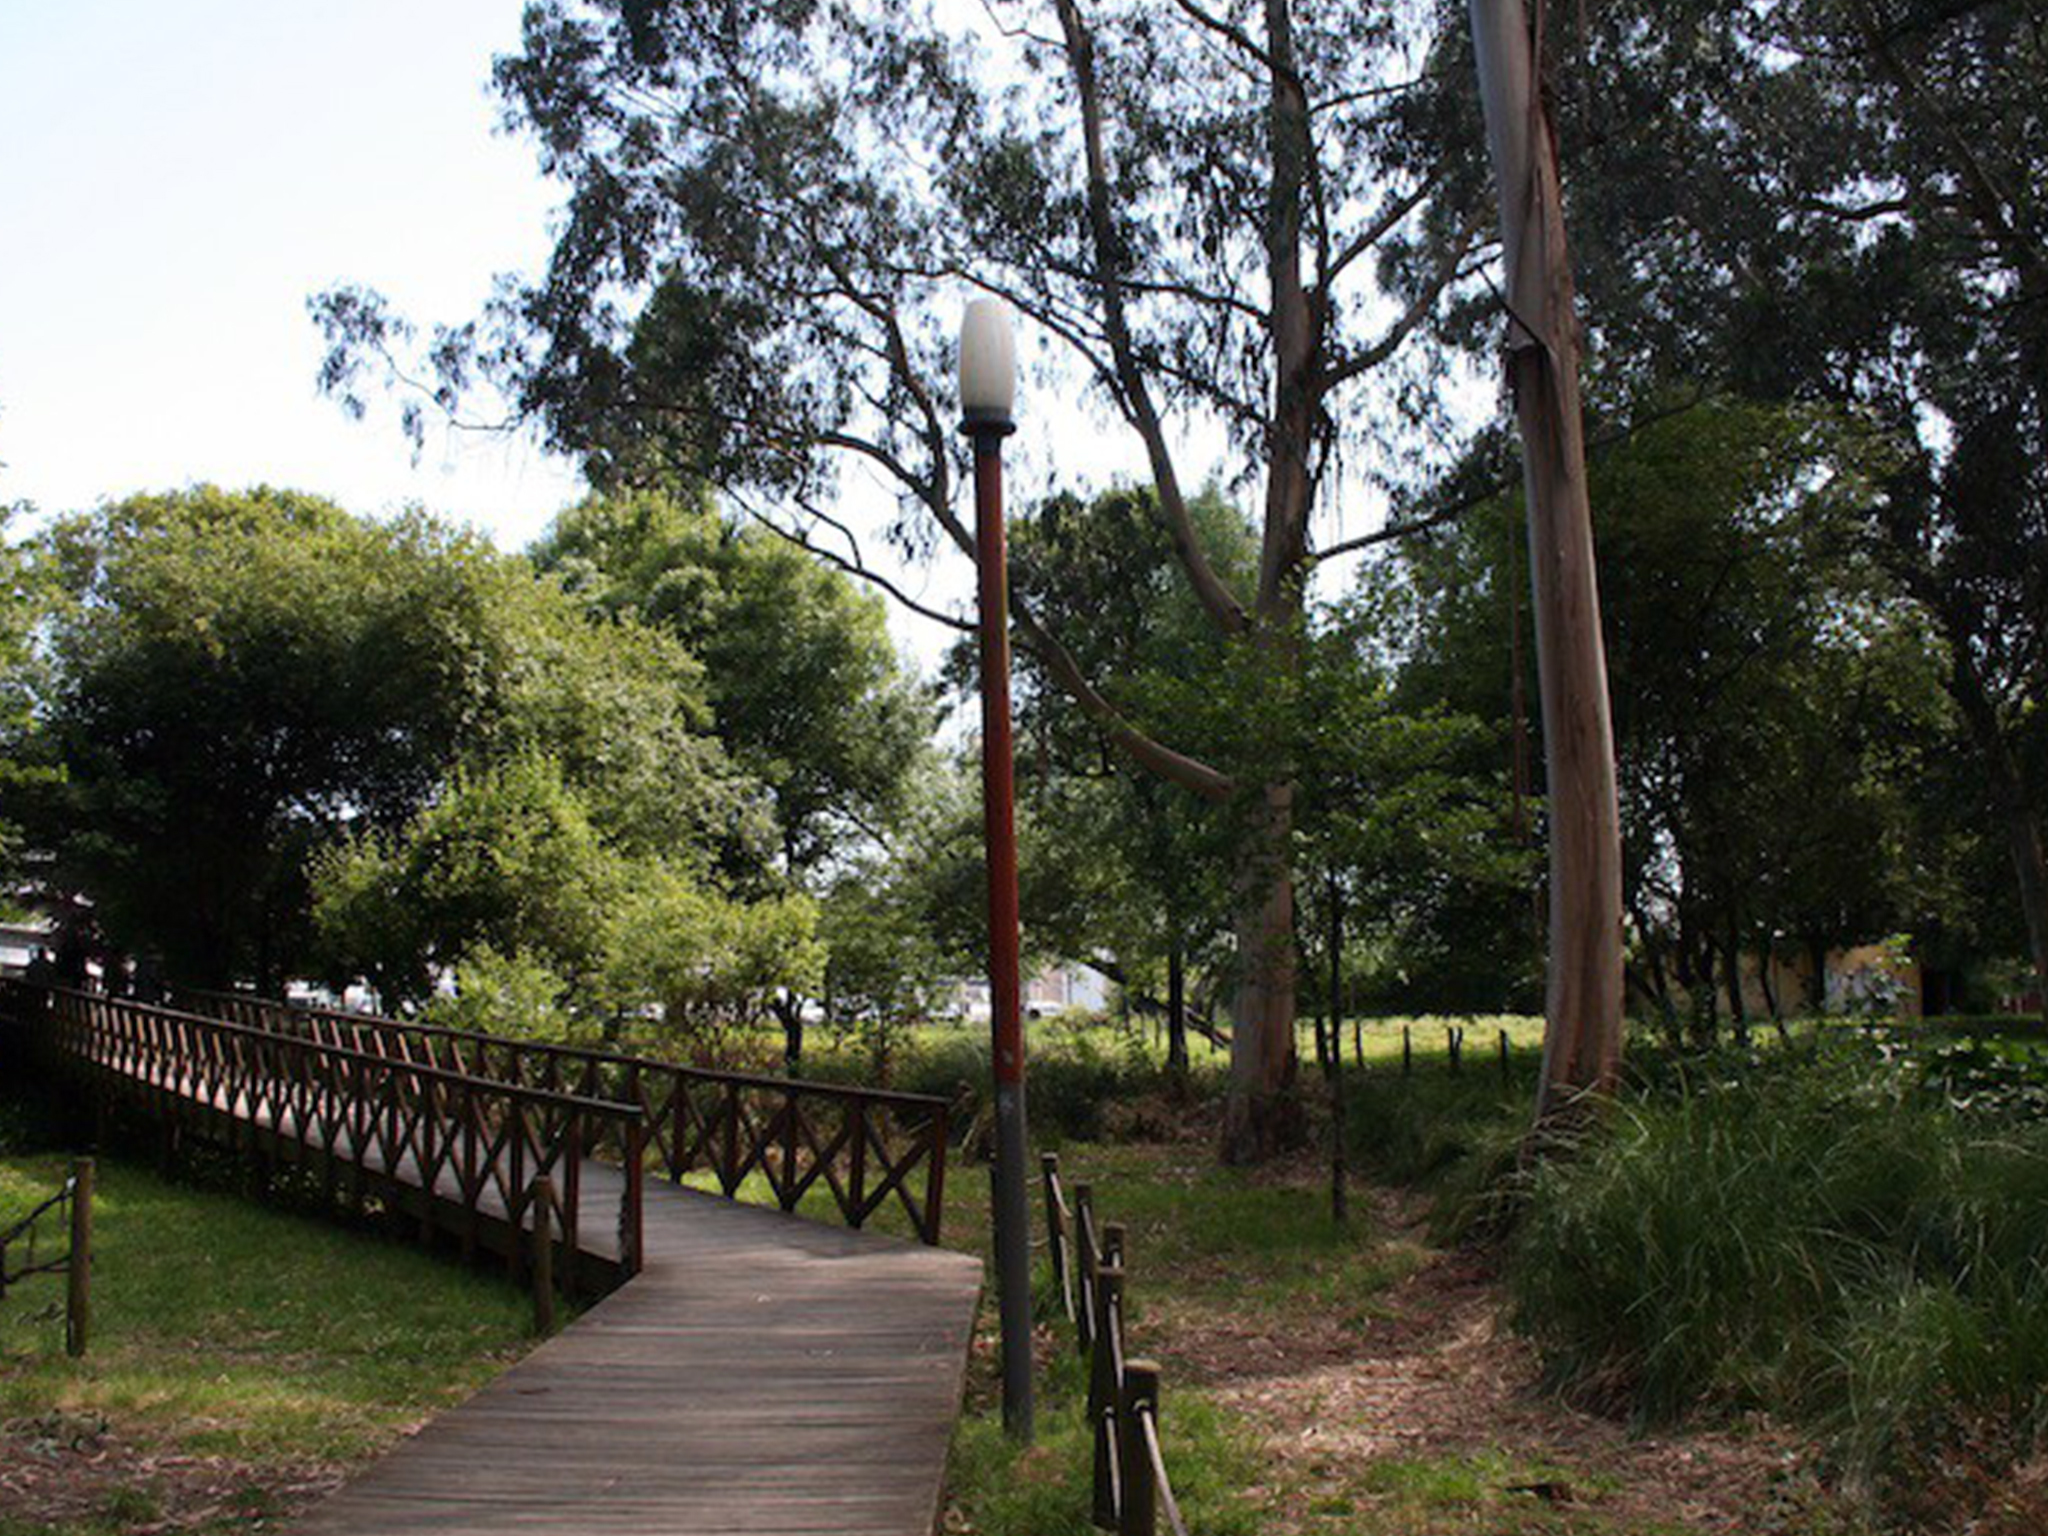 Parque do Carriçal